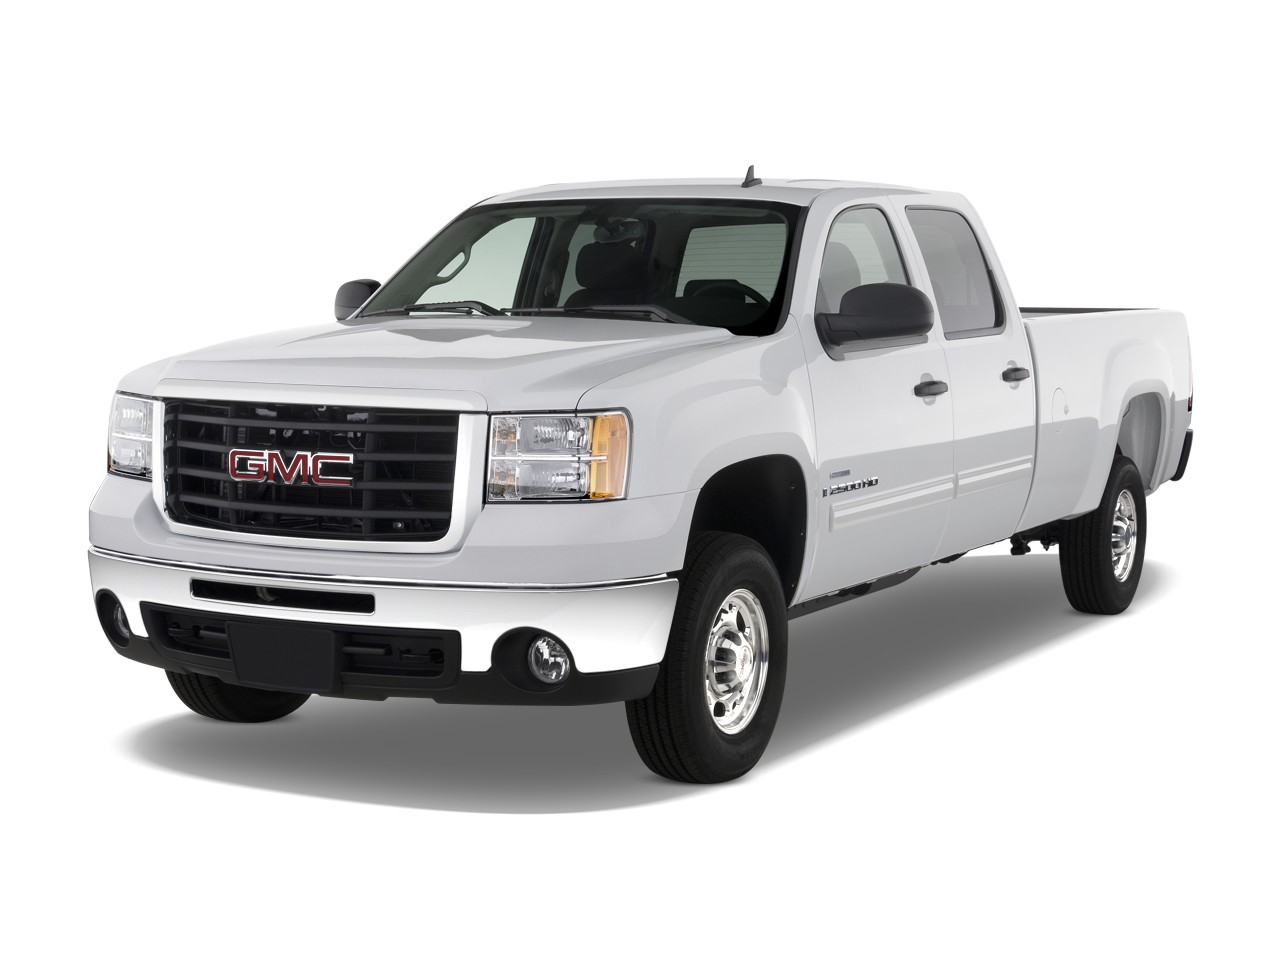 GMC Sierra 2500HD Crew Cab specs & photos - 2008, 2009 ...